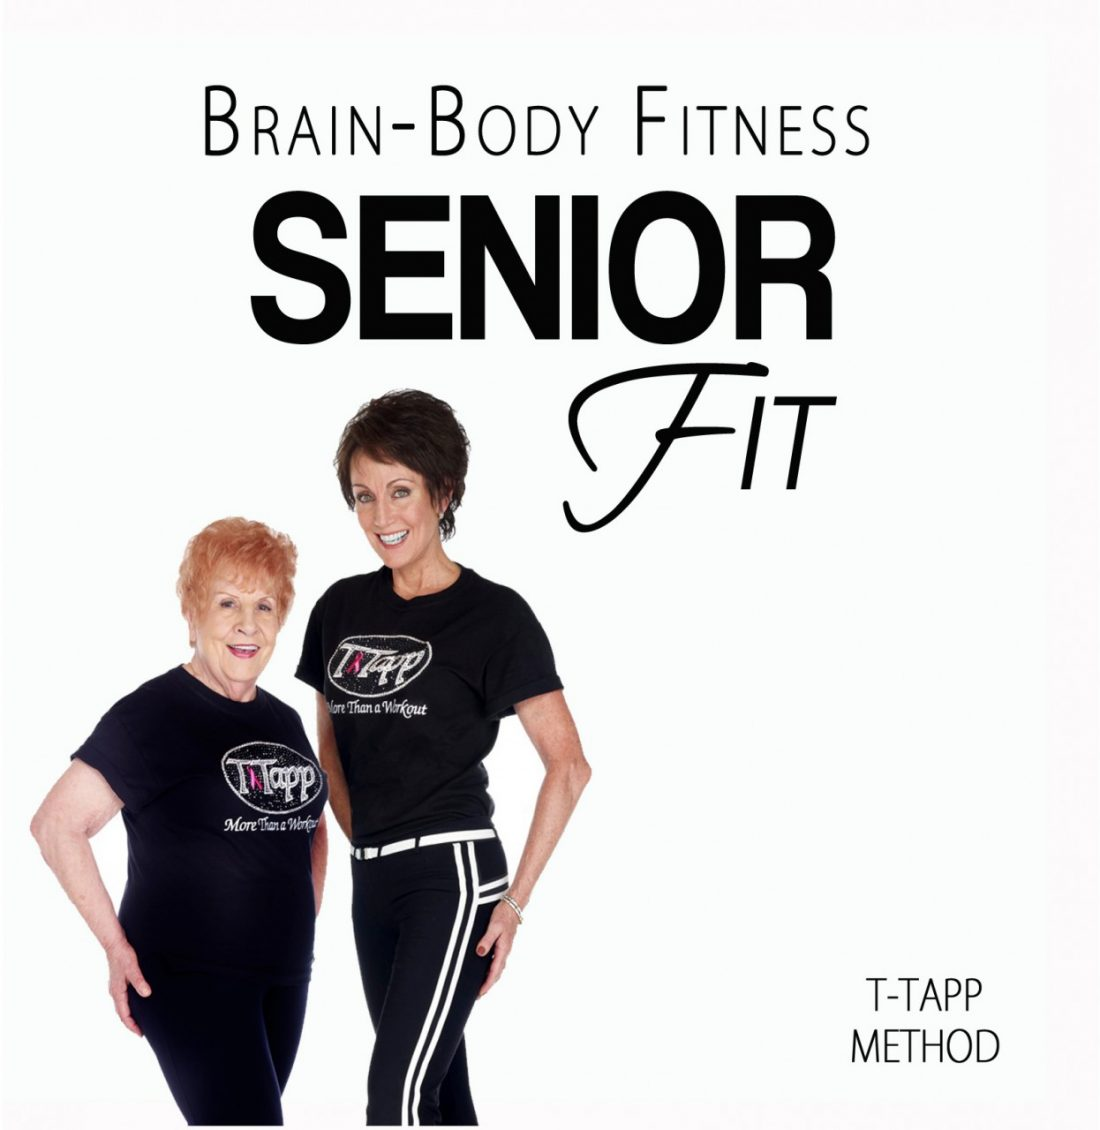 T-Tapp January Special: $10 off Senior Fit exercise DVD